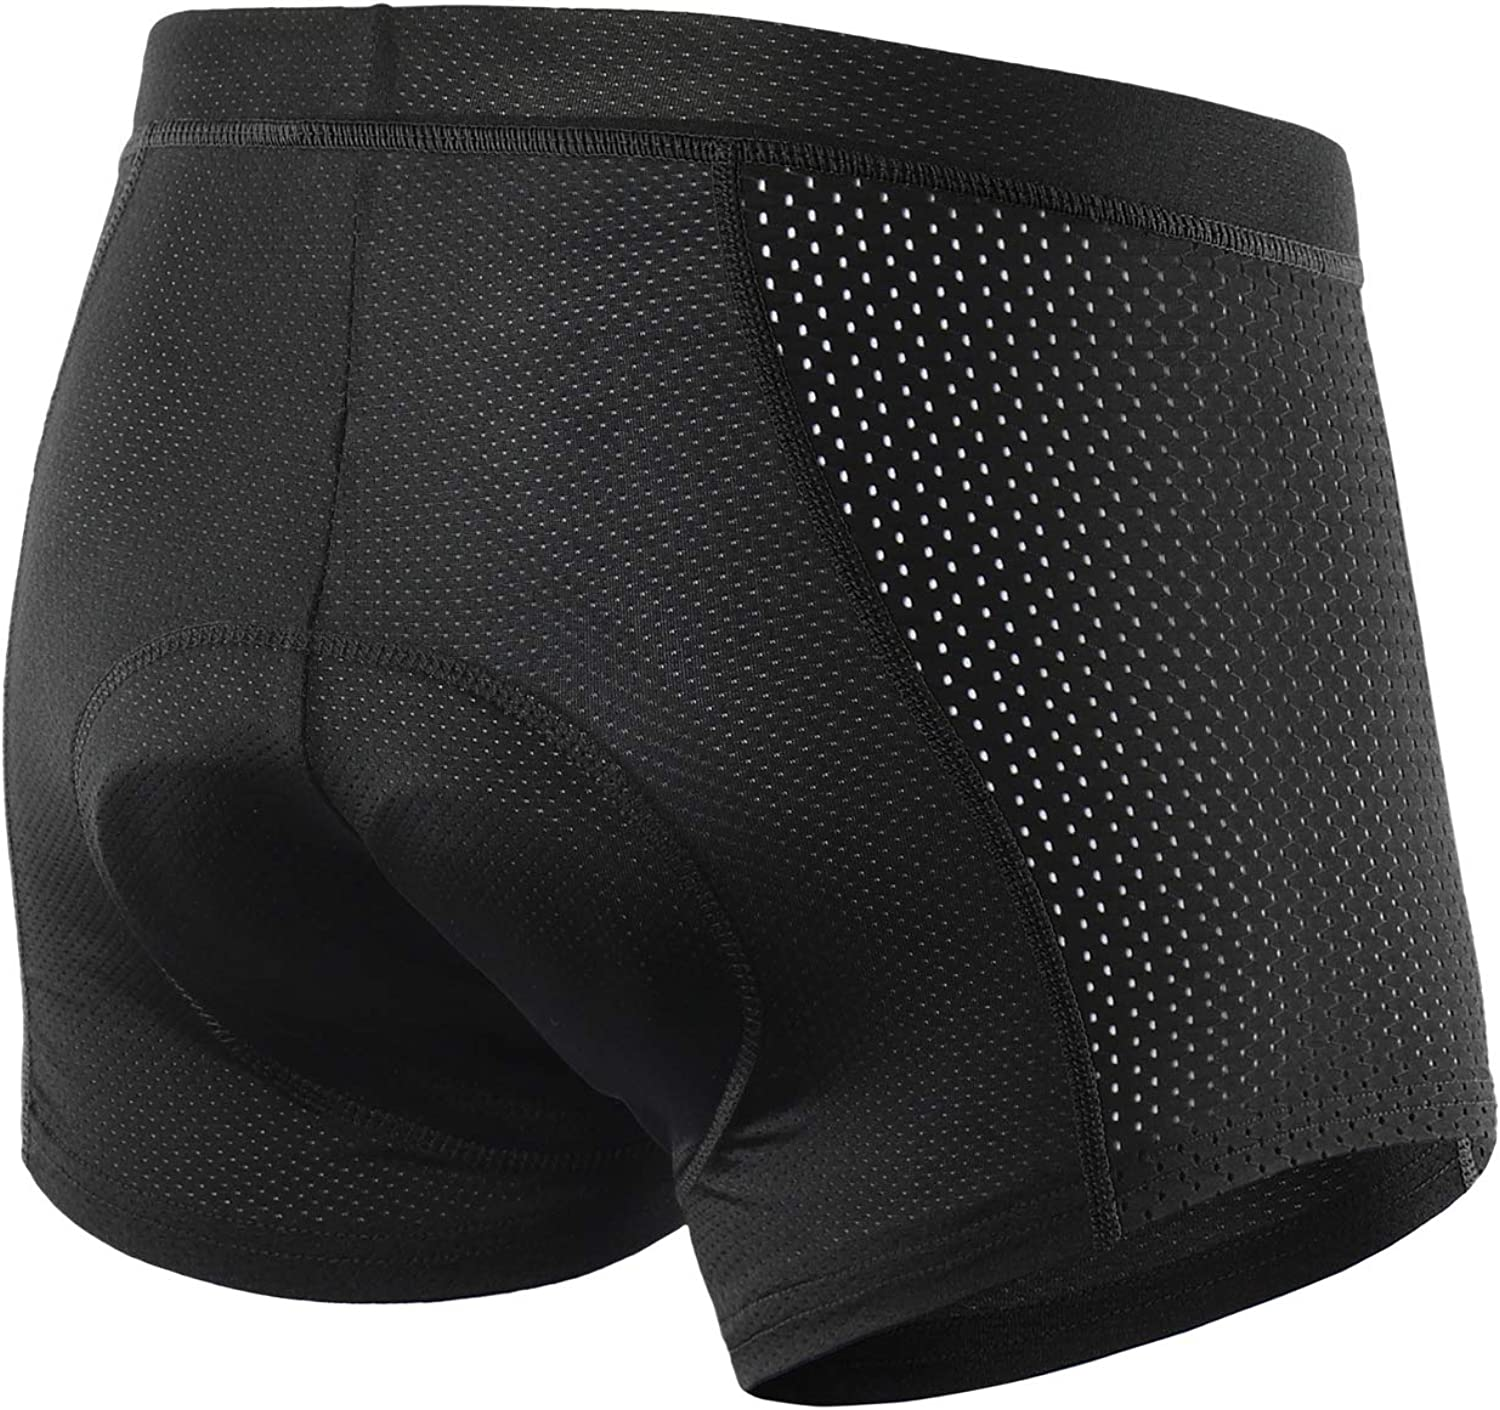 ARSUXEO Men's Gel Padded Cycling Underwear MTB Bike Bicycle Compression Shorts 001C: Clothing